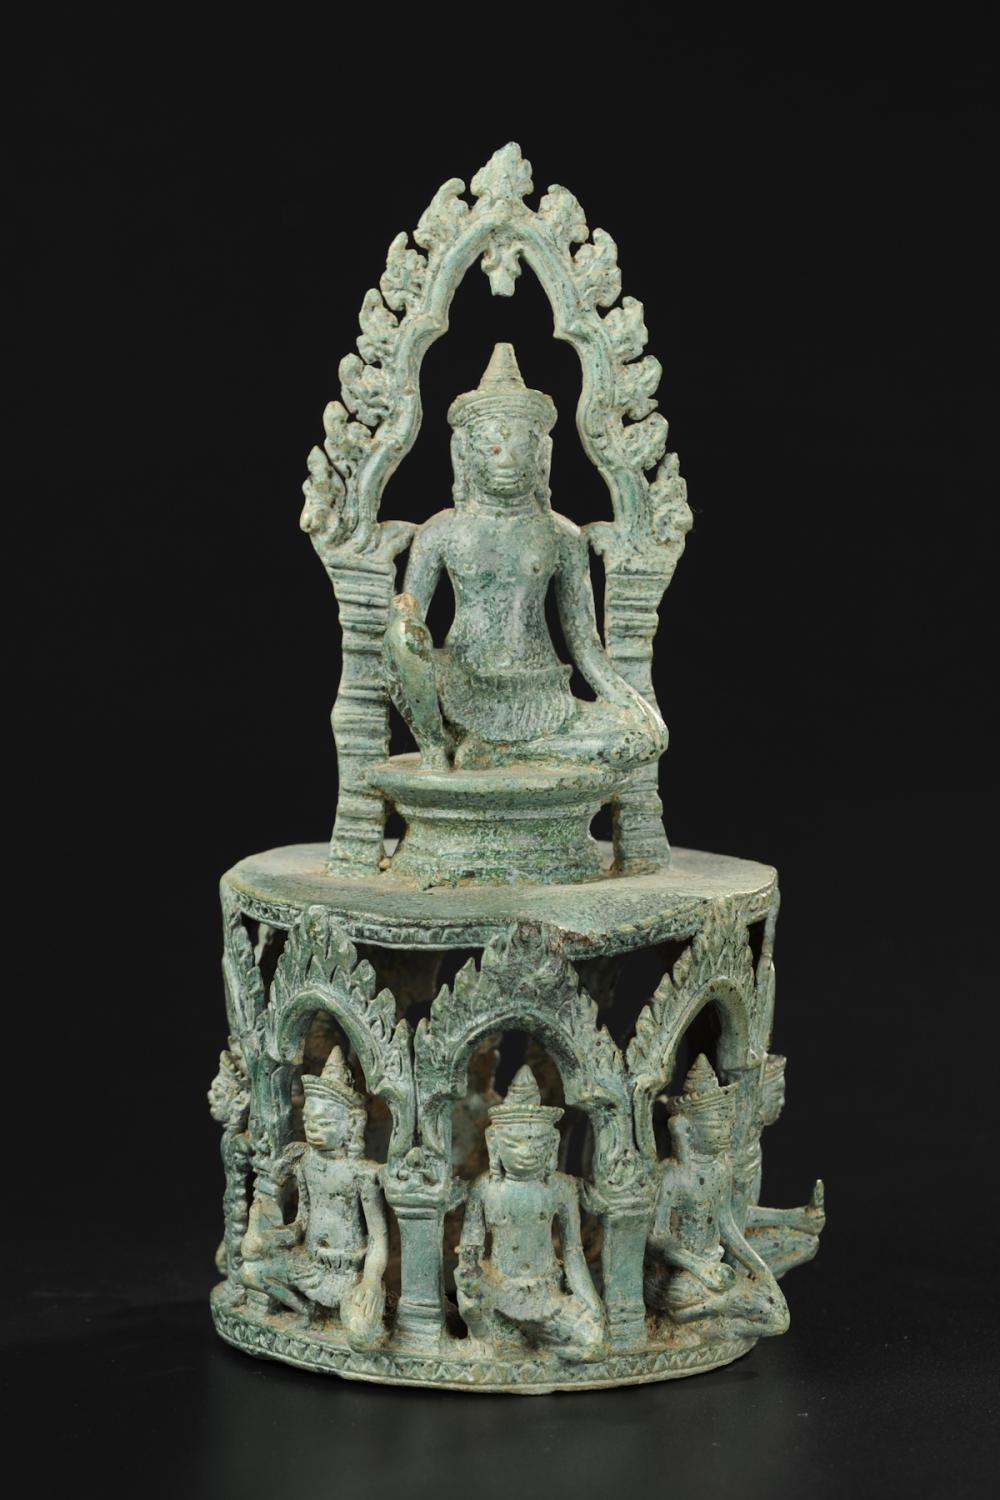 ANGKOR DYNASTY BRONZE BUDDHA, 12TH CENTURY